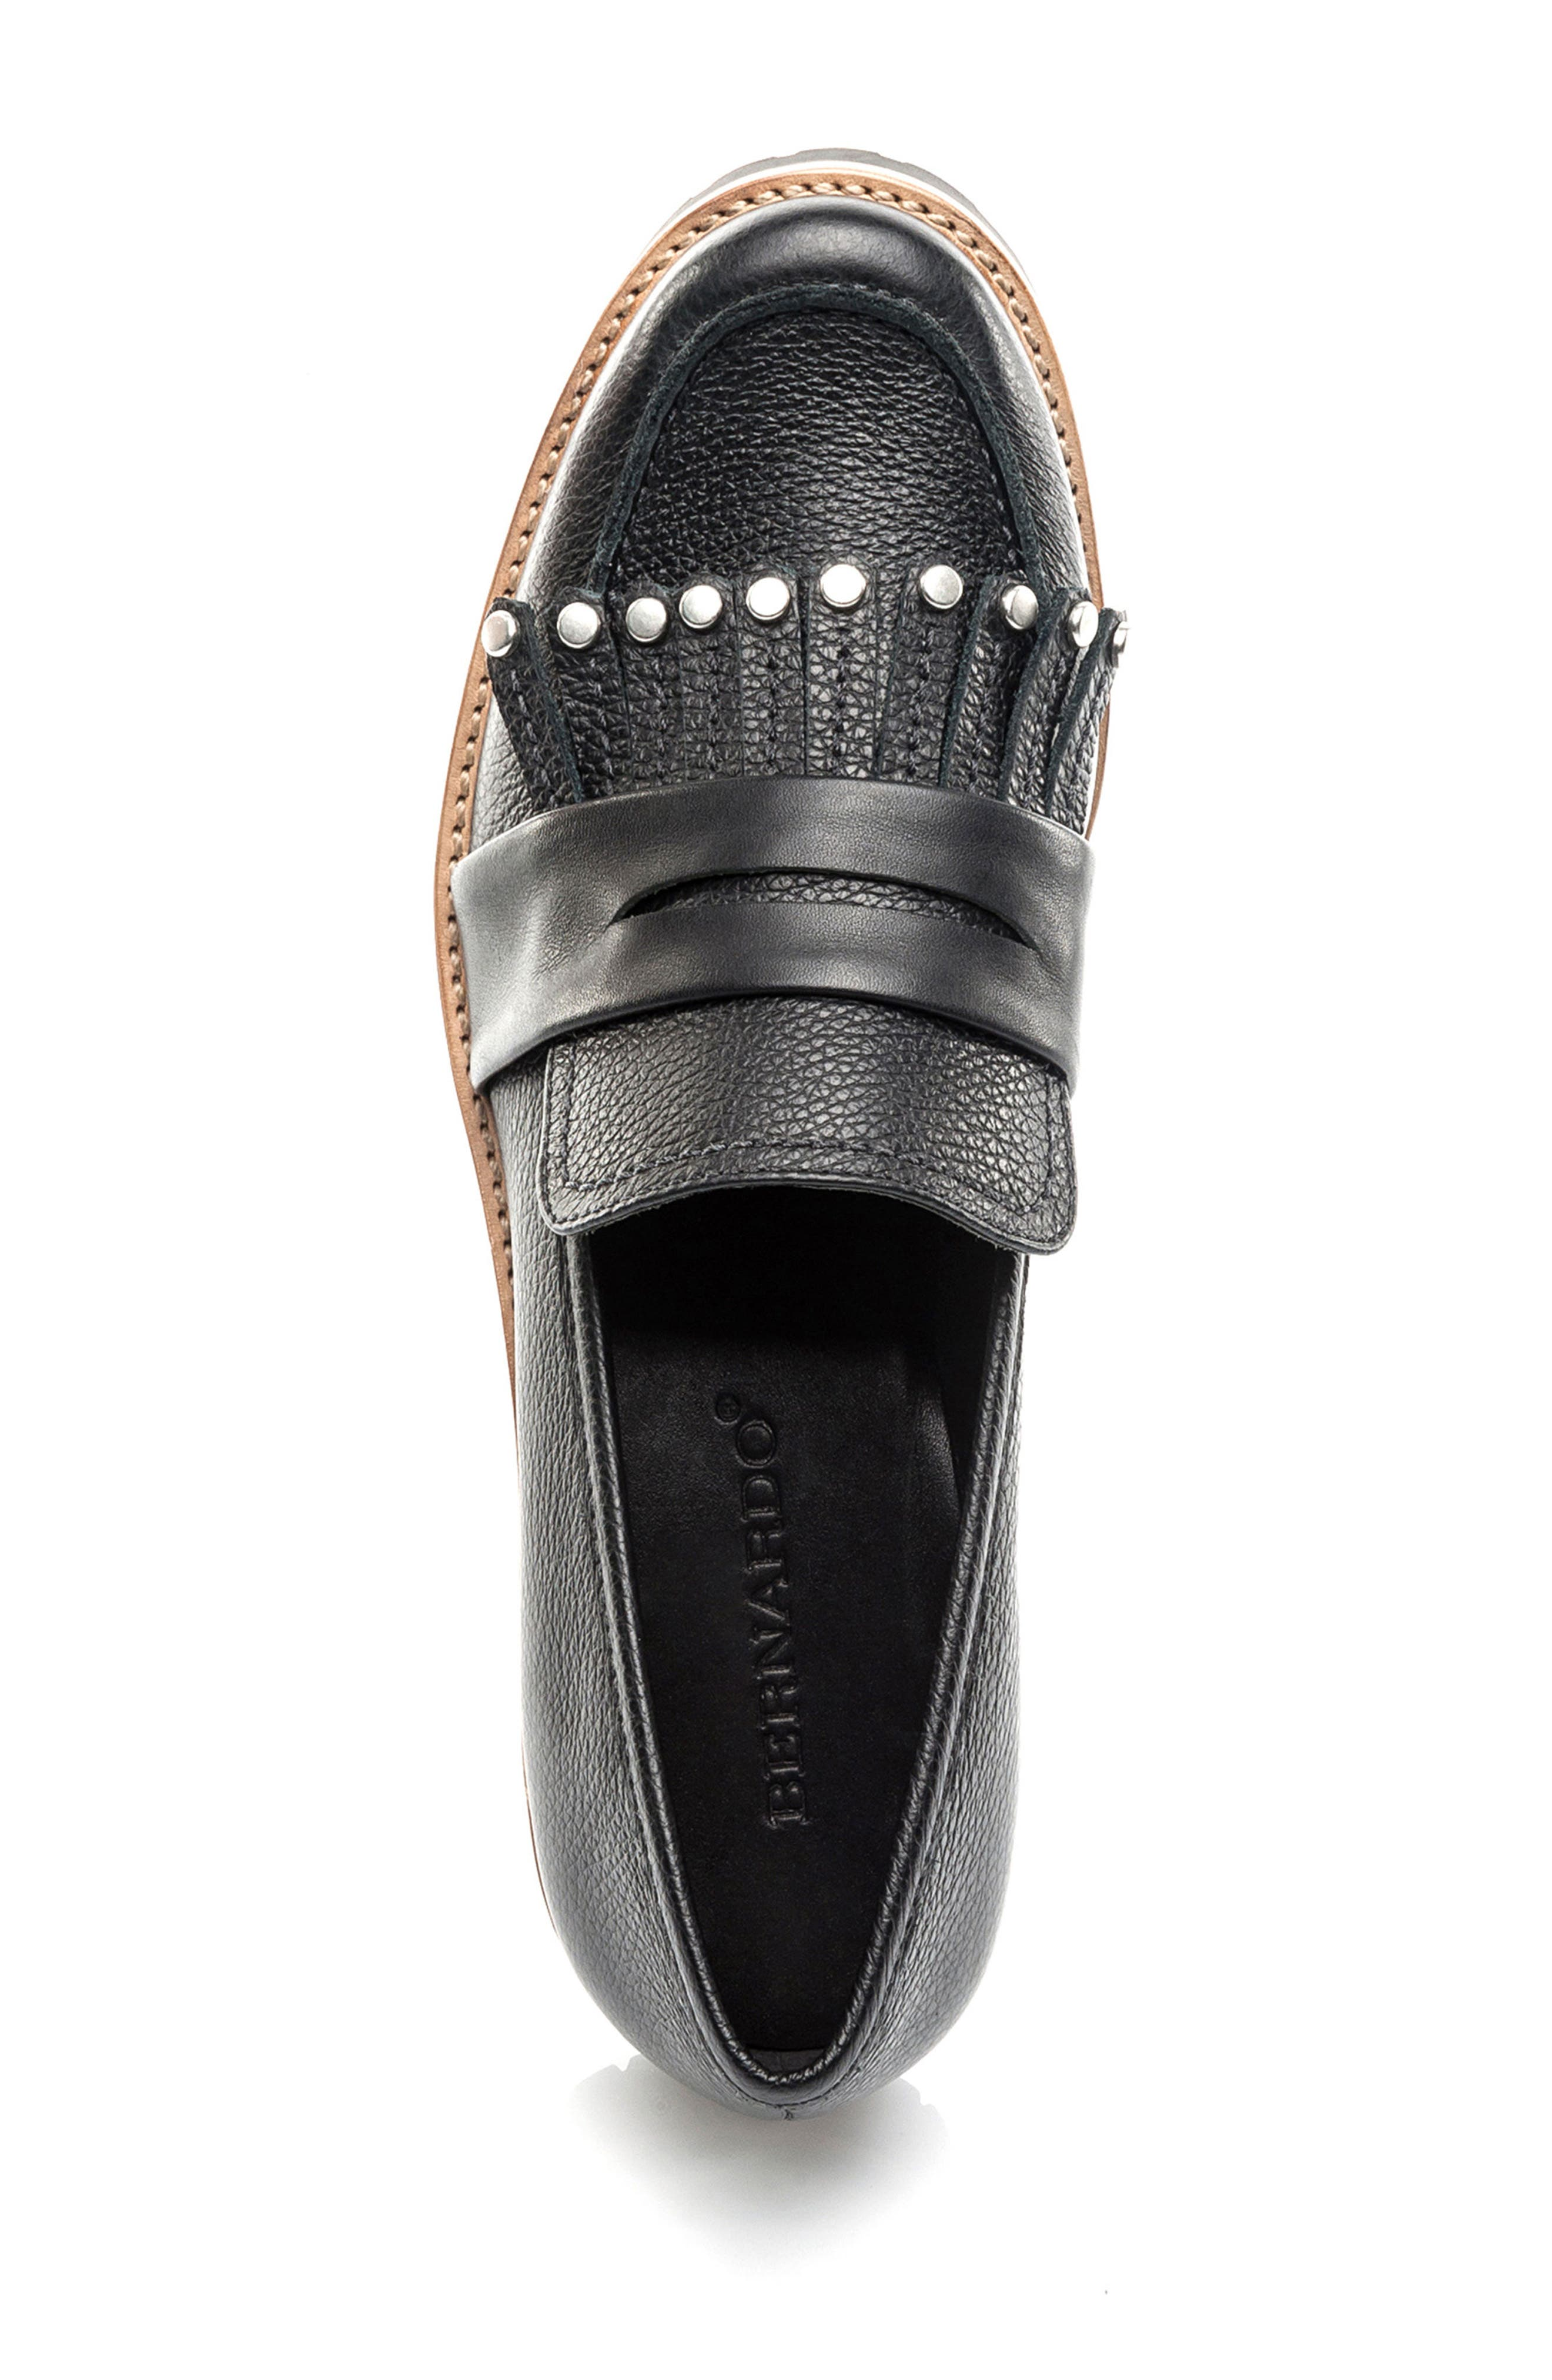 Olley Loafer,                             Alternate thumbnail 5, color,                             Black Leather